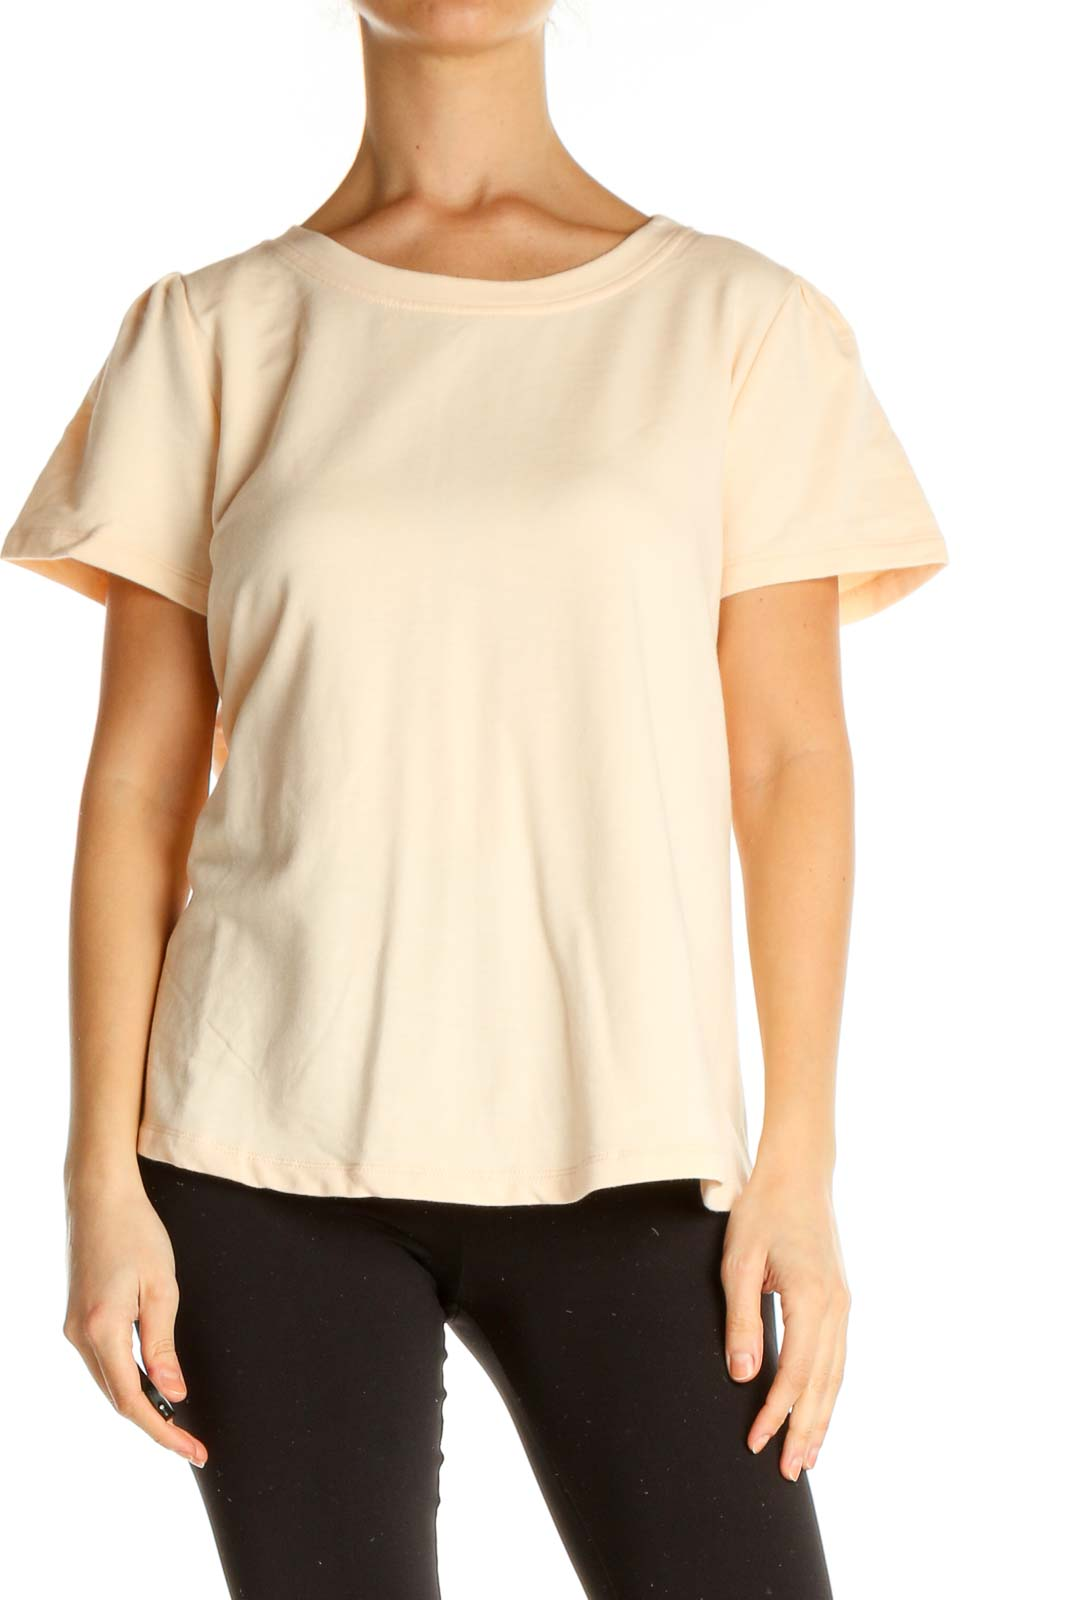 Beige Solid All Day Wear T-Shirt Front